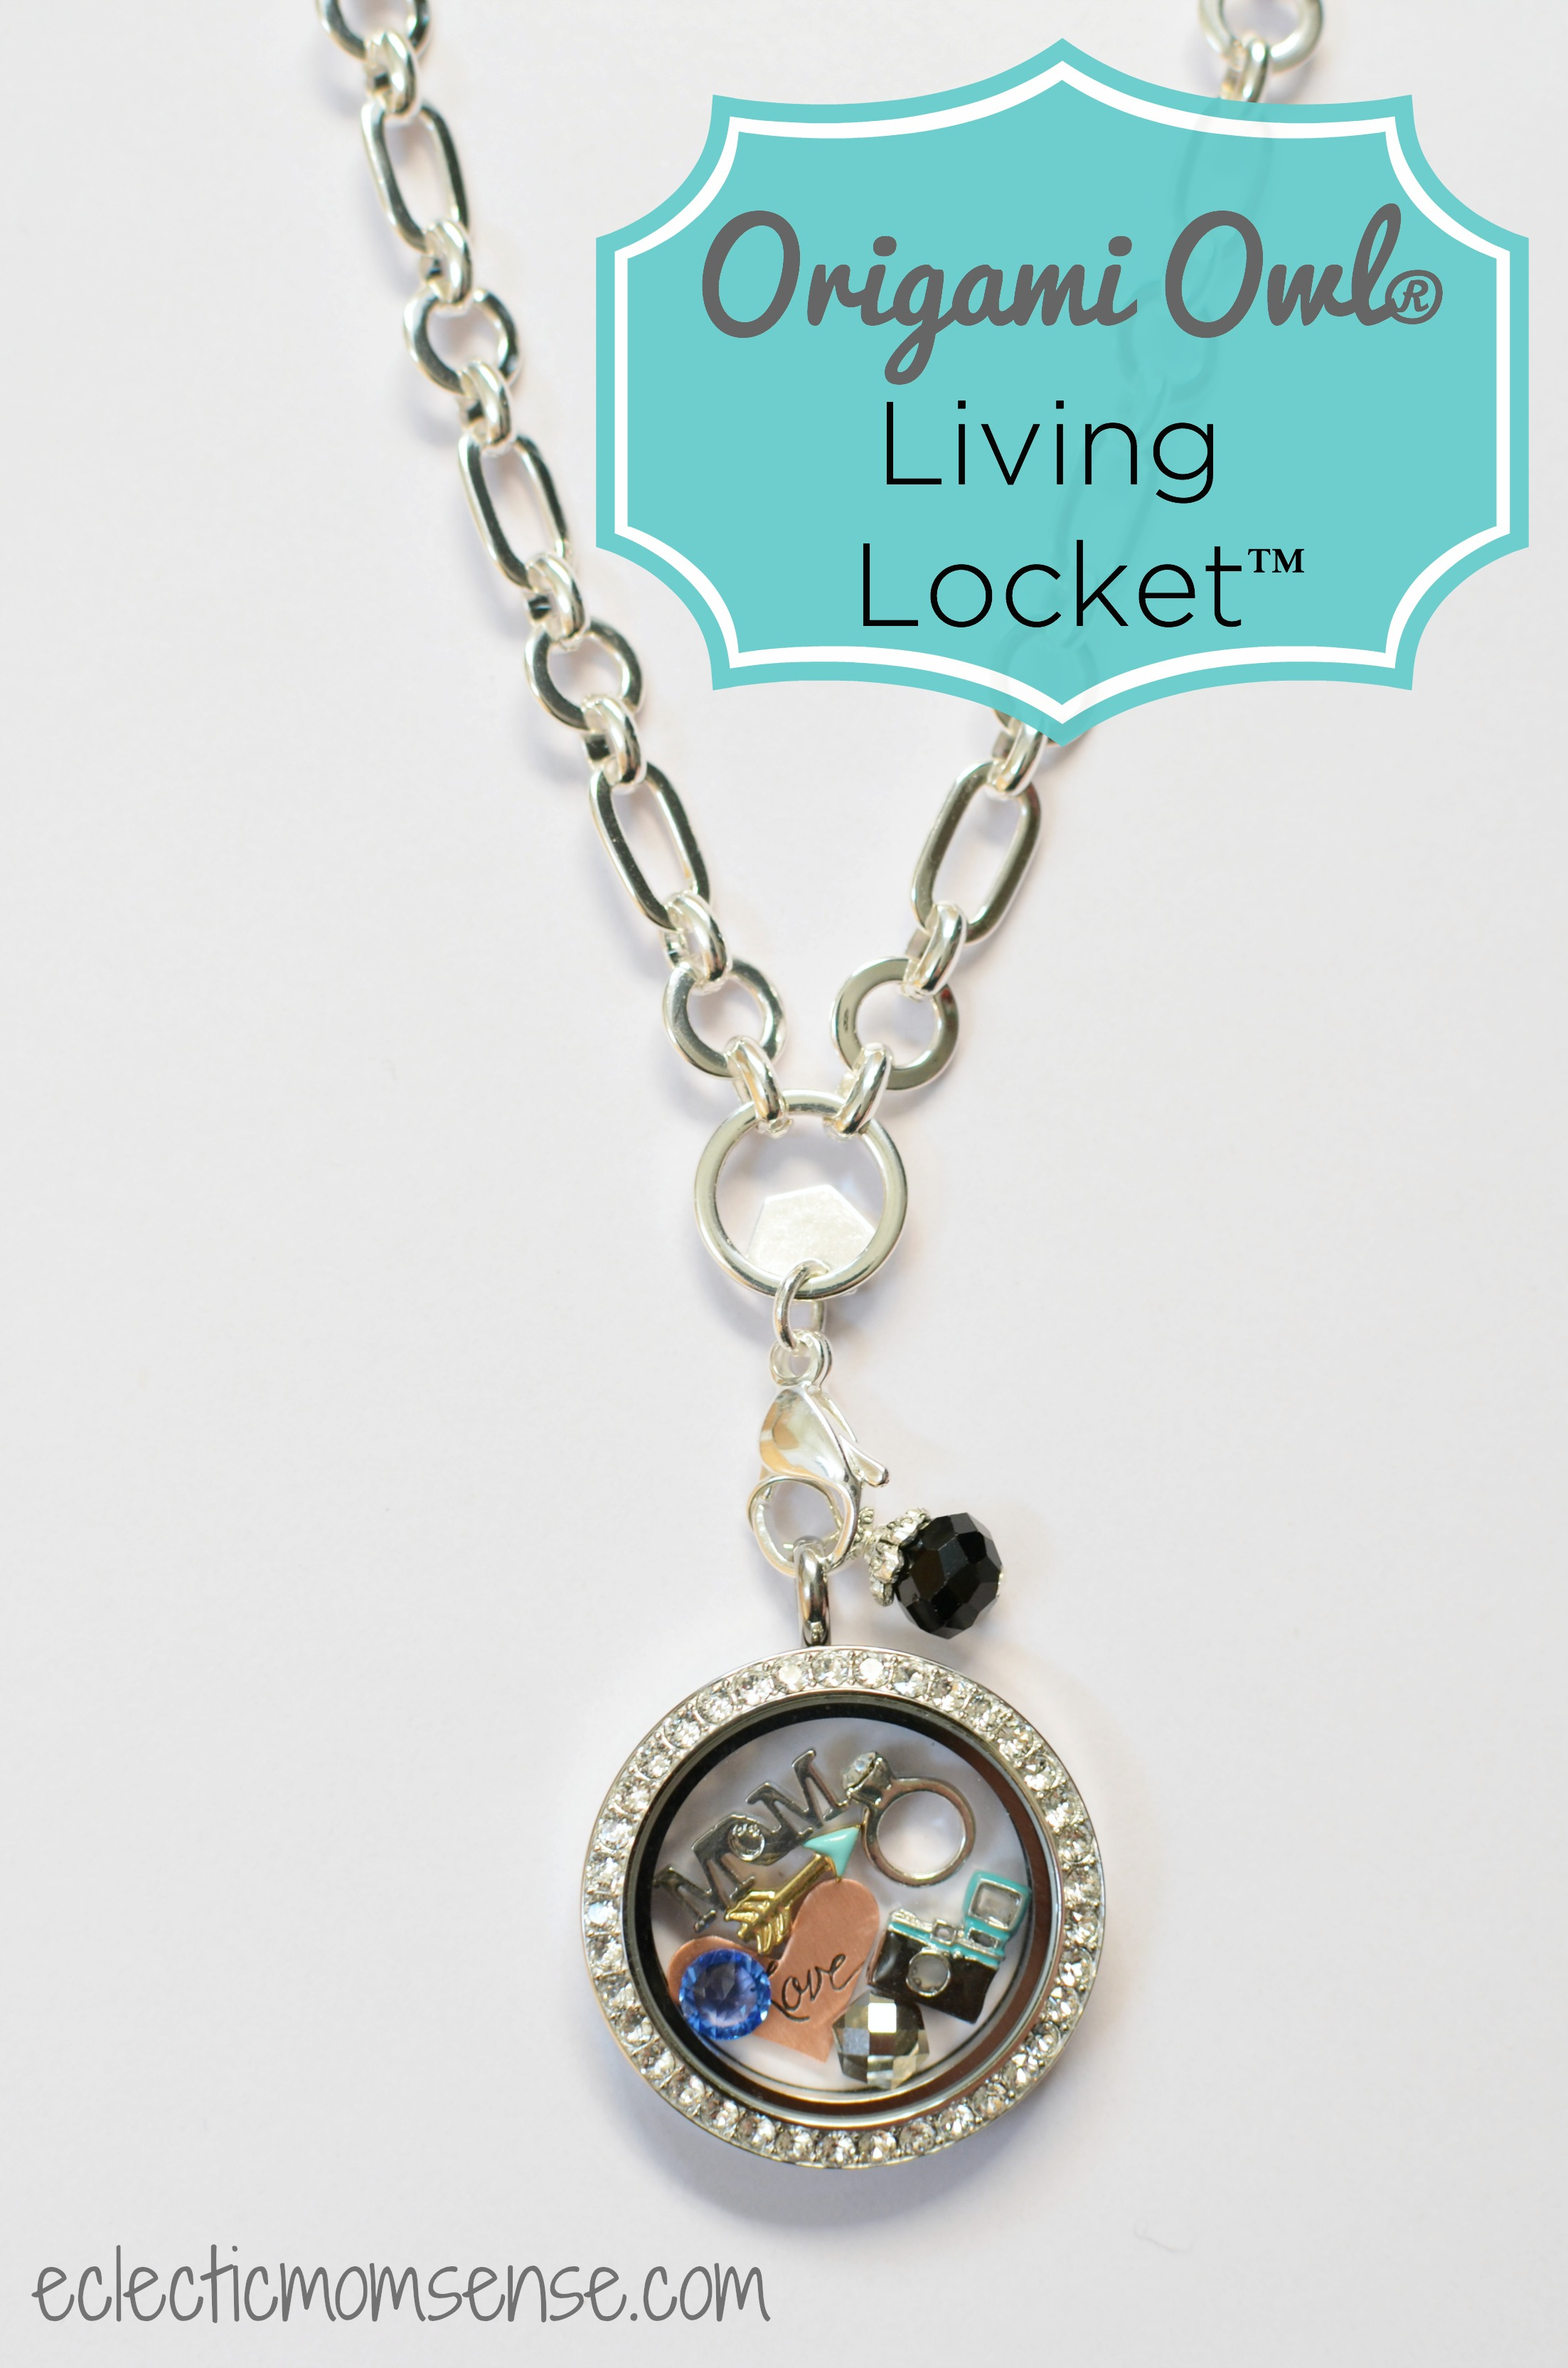 Origami Owl Over The Heart Chain Origami Owl Living Locket Building Your Story Eclectic Momsense